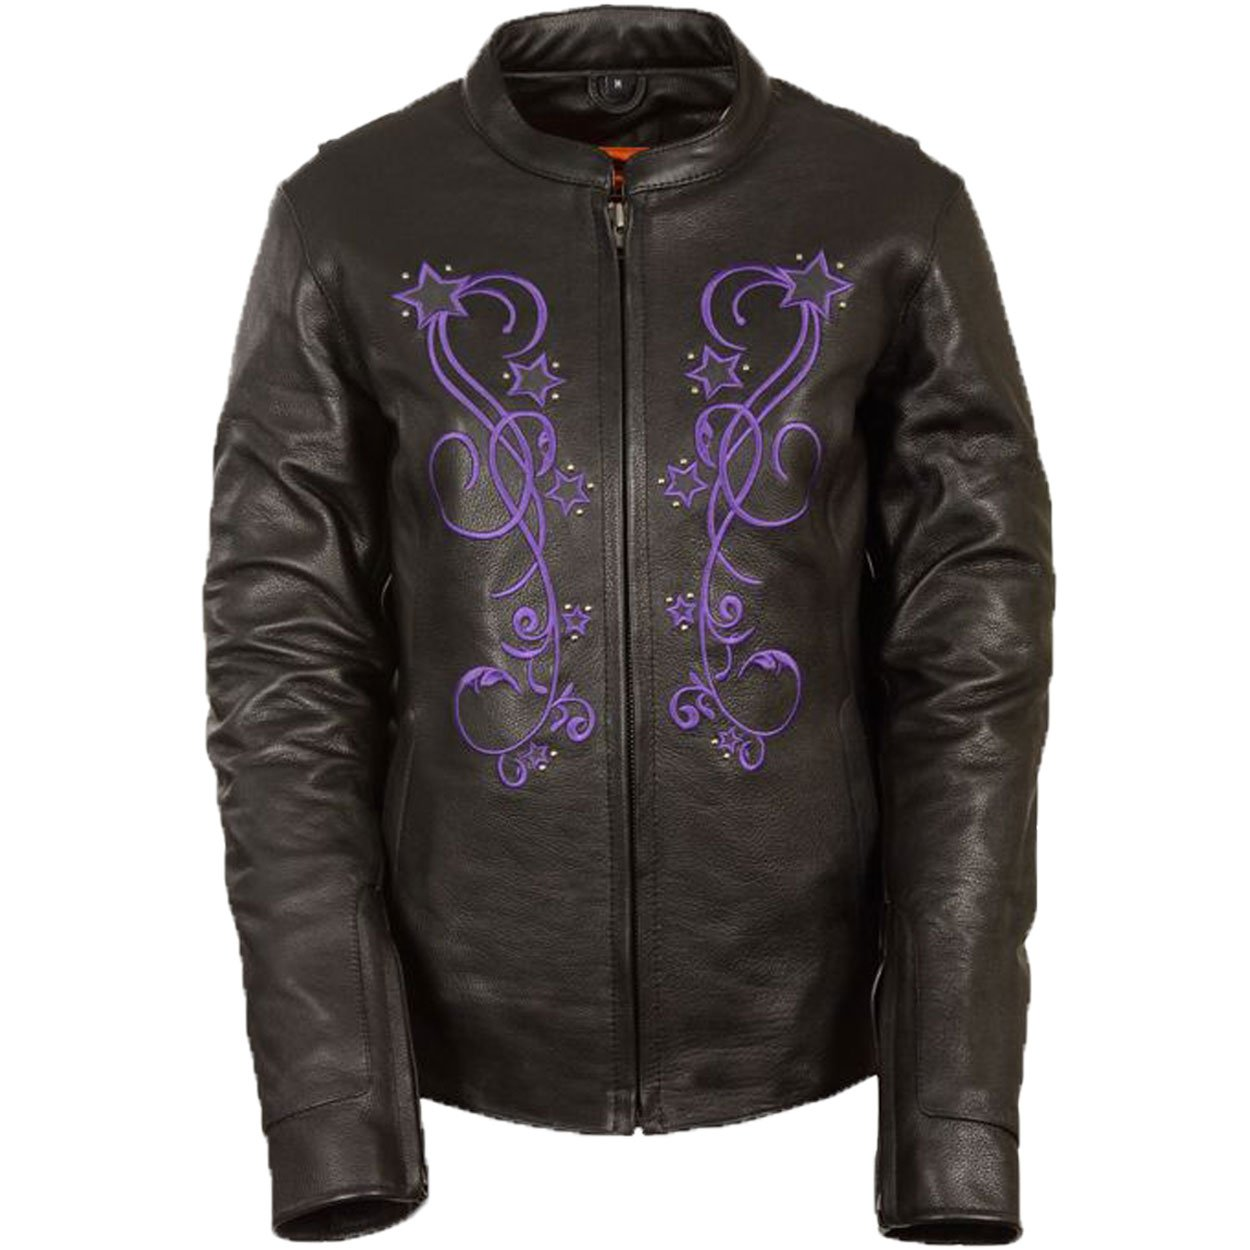 Womens Reflective Star Embroidery Leather Jacket